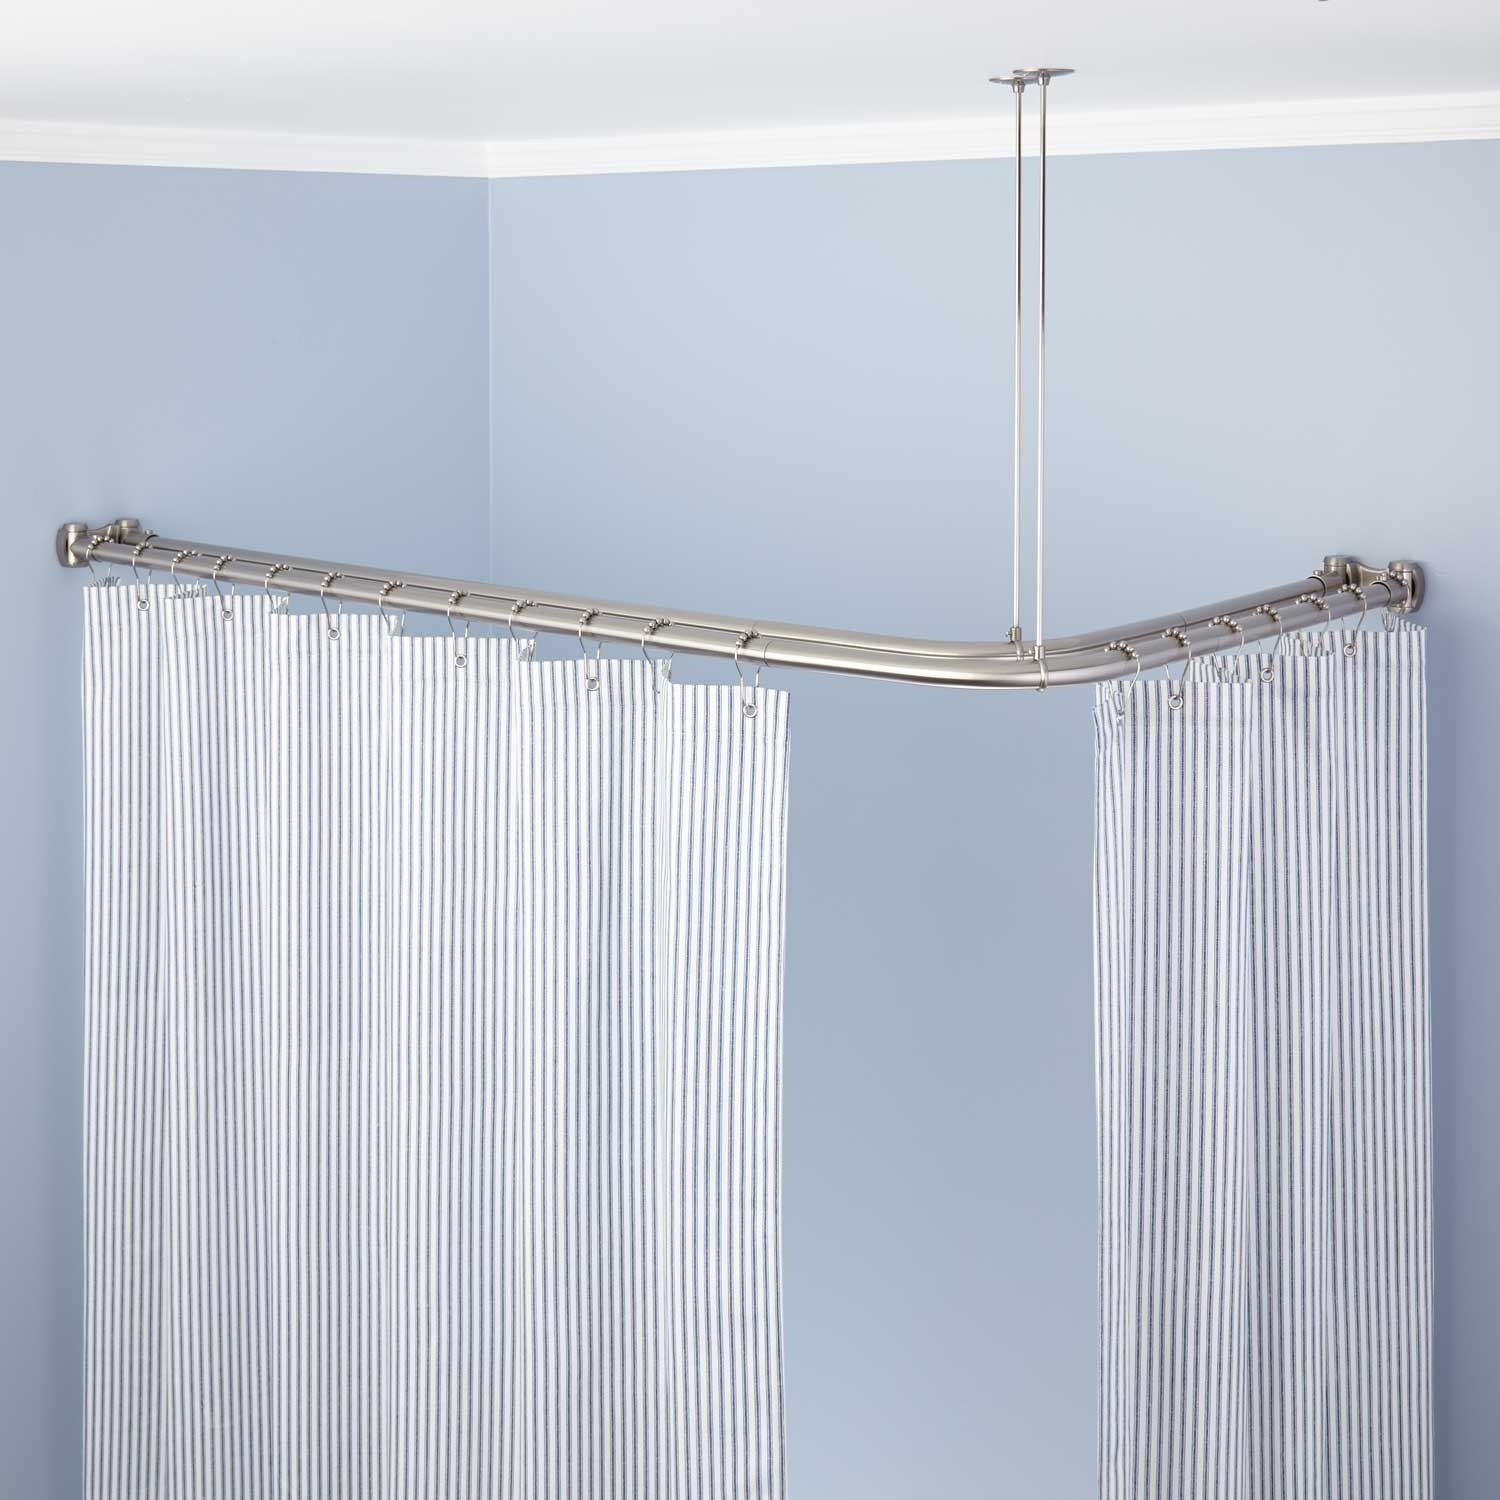 18 24 Inch Curtain Rods 25 Collection Of Odd Shower Curtains Curtain Ideas